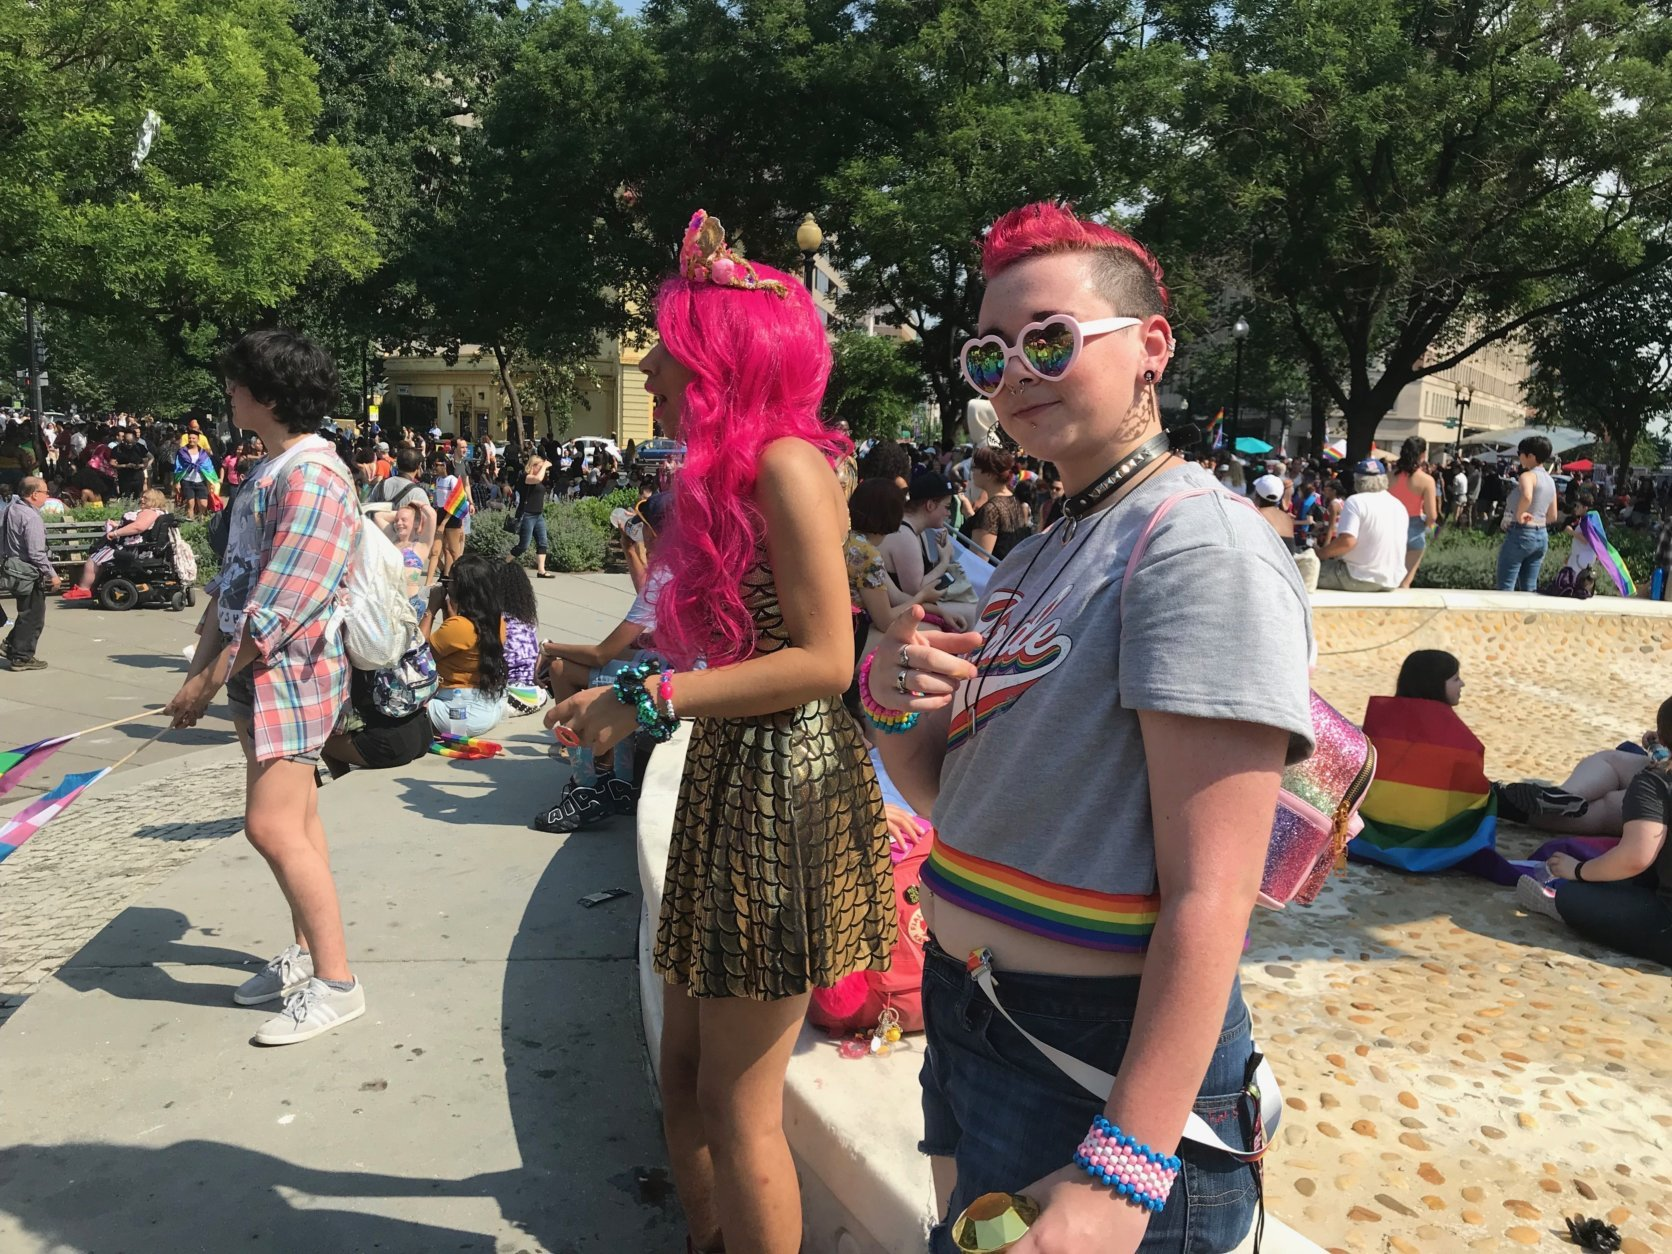 Parade-attendees march on and celebrate Pride Month at D.C.'s Pride Parade. (WTOP/Dick Uliano)